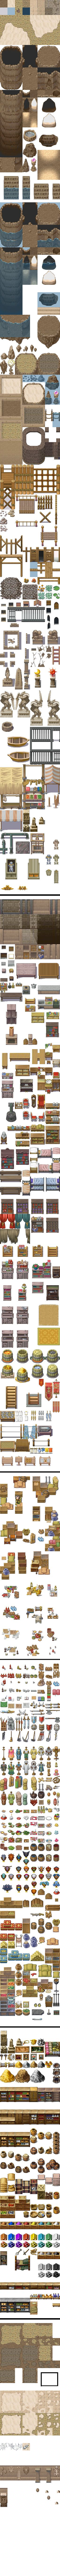 tileset 3 rpg maker xp by Mataraelfay on DeviantArt